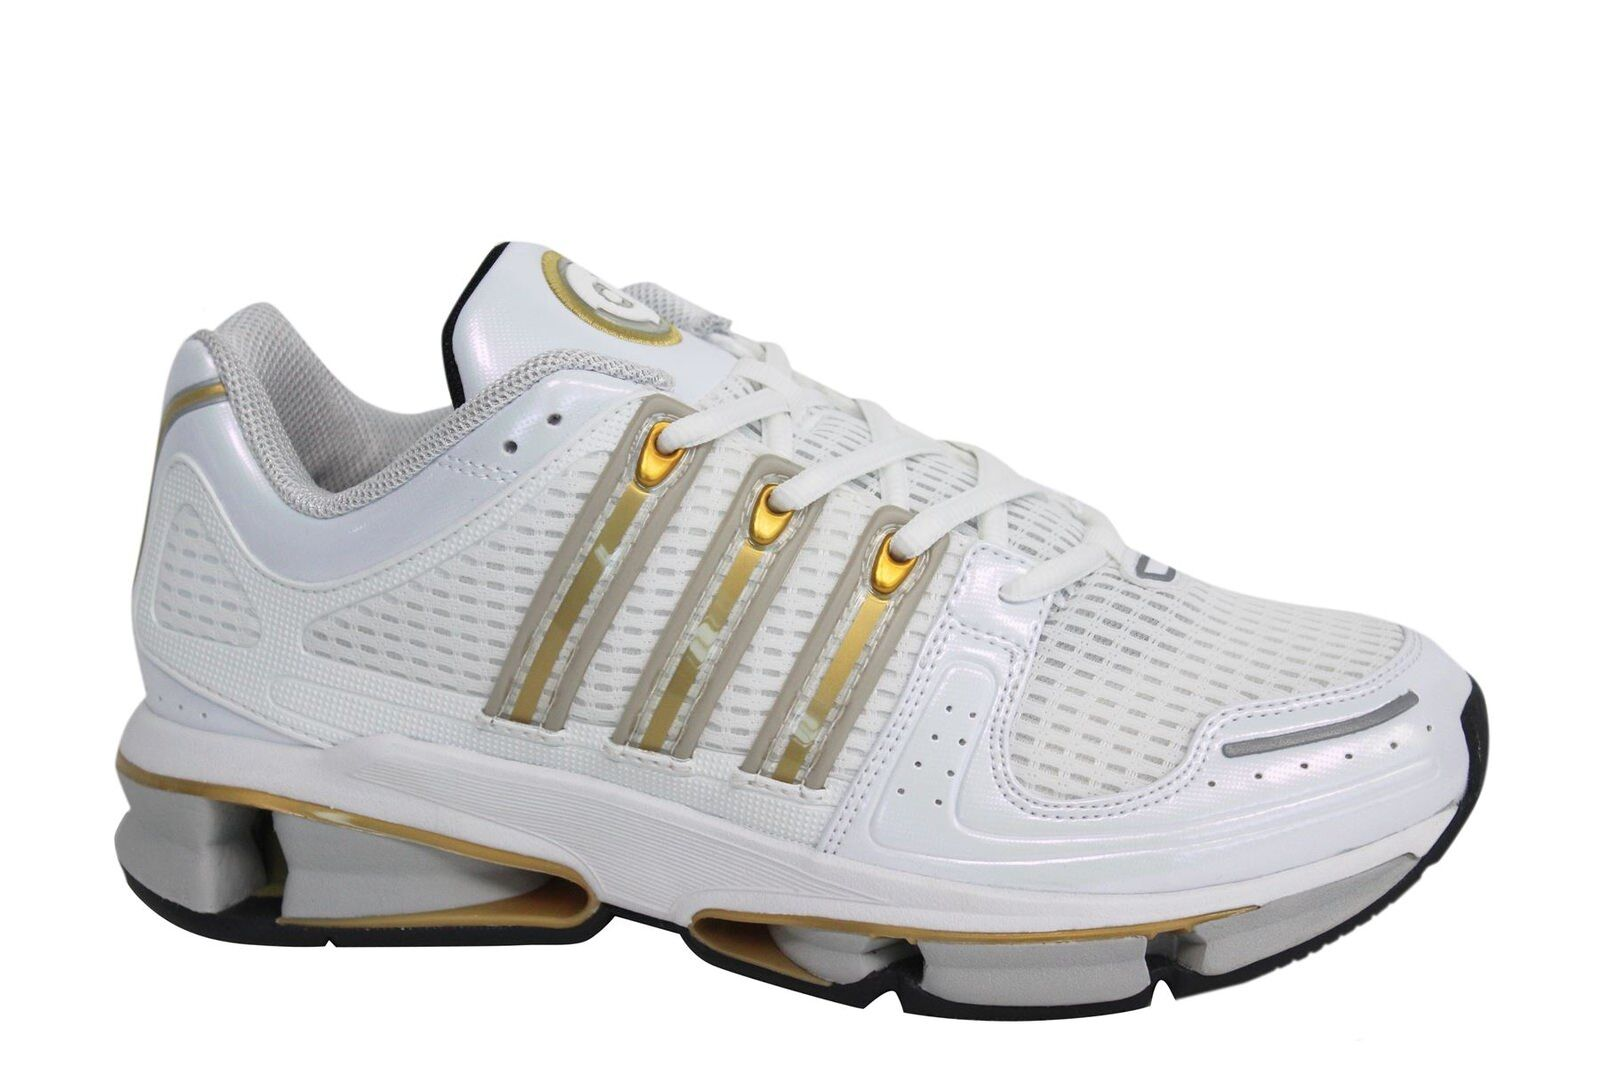 Adidas A3 Twinstrike Lace Up White Gold Synthetic Mens Trainers